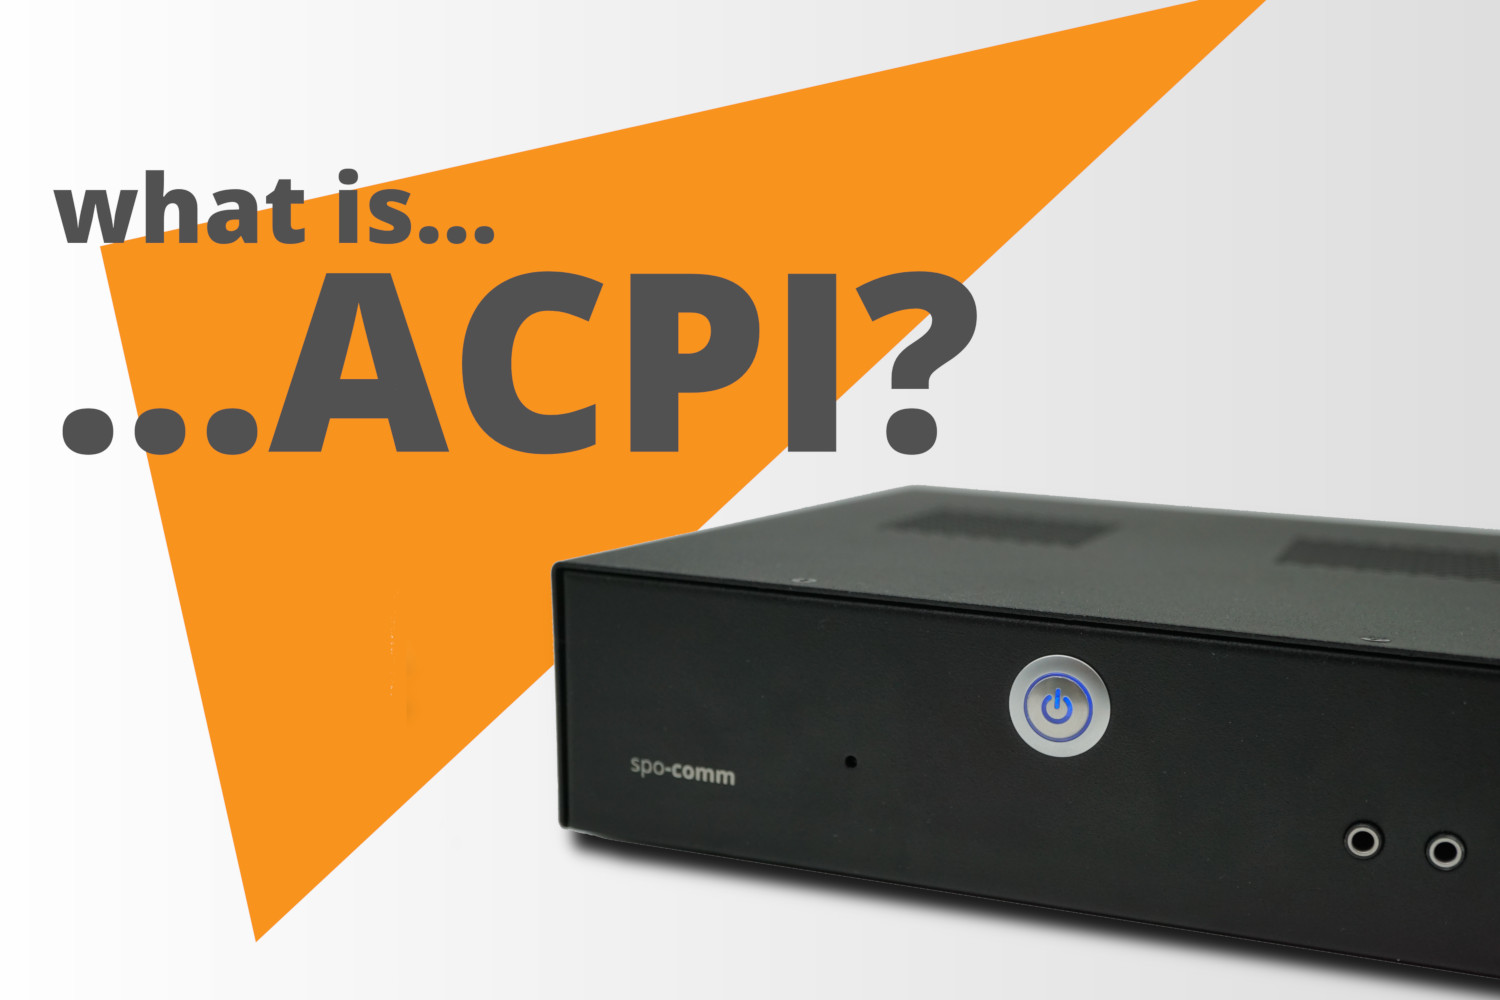 What is ACPI?